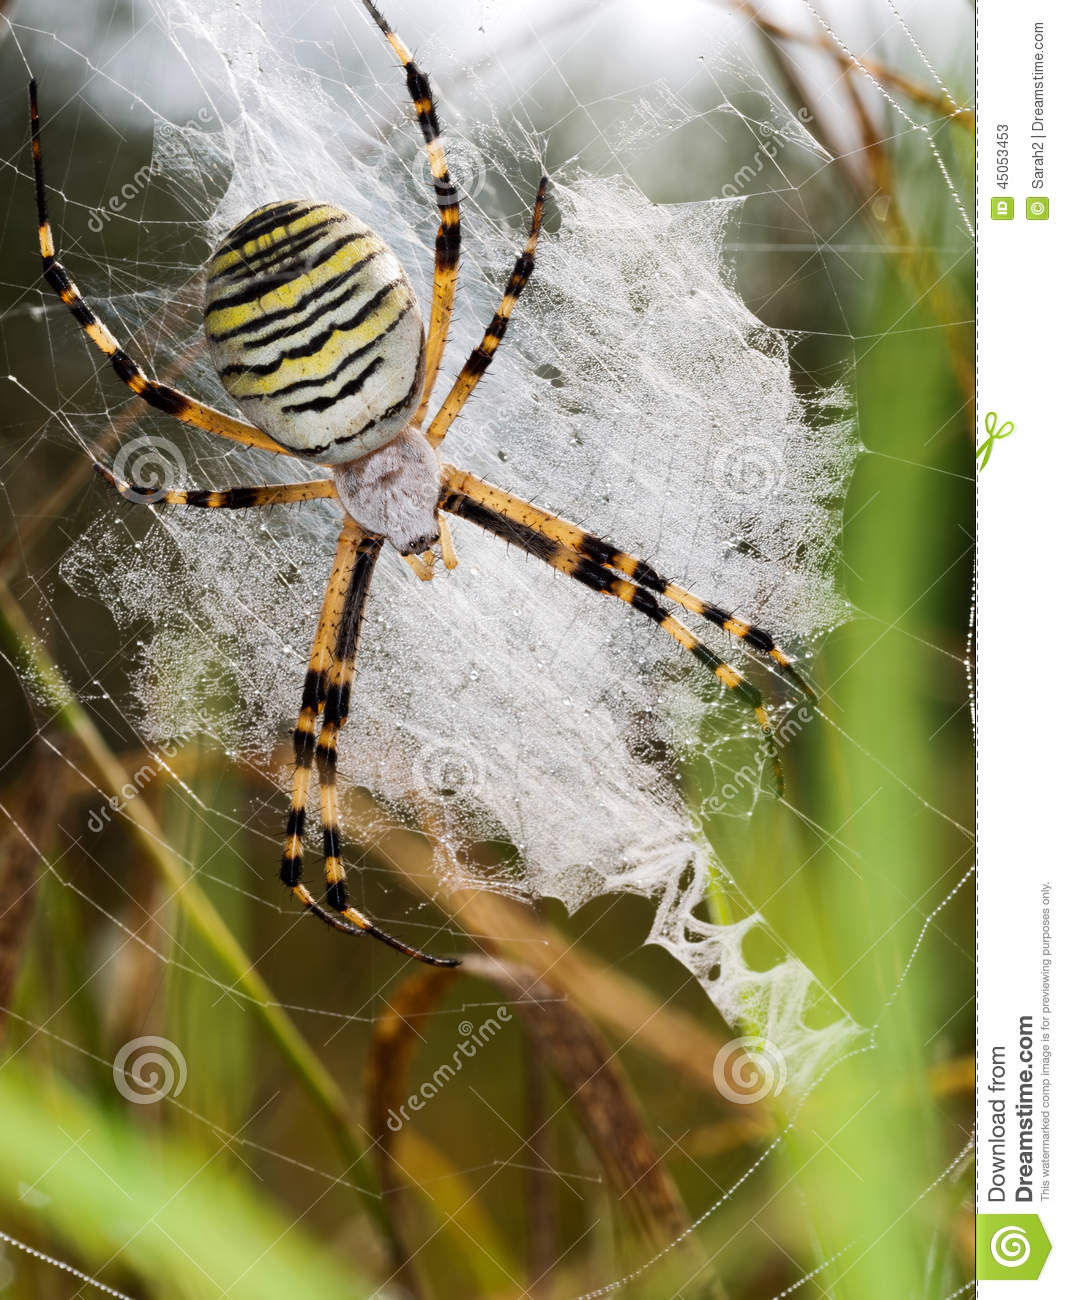 Wasp Spider clipart #12, Download drawings